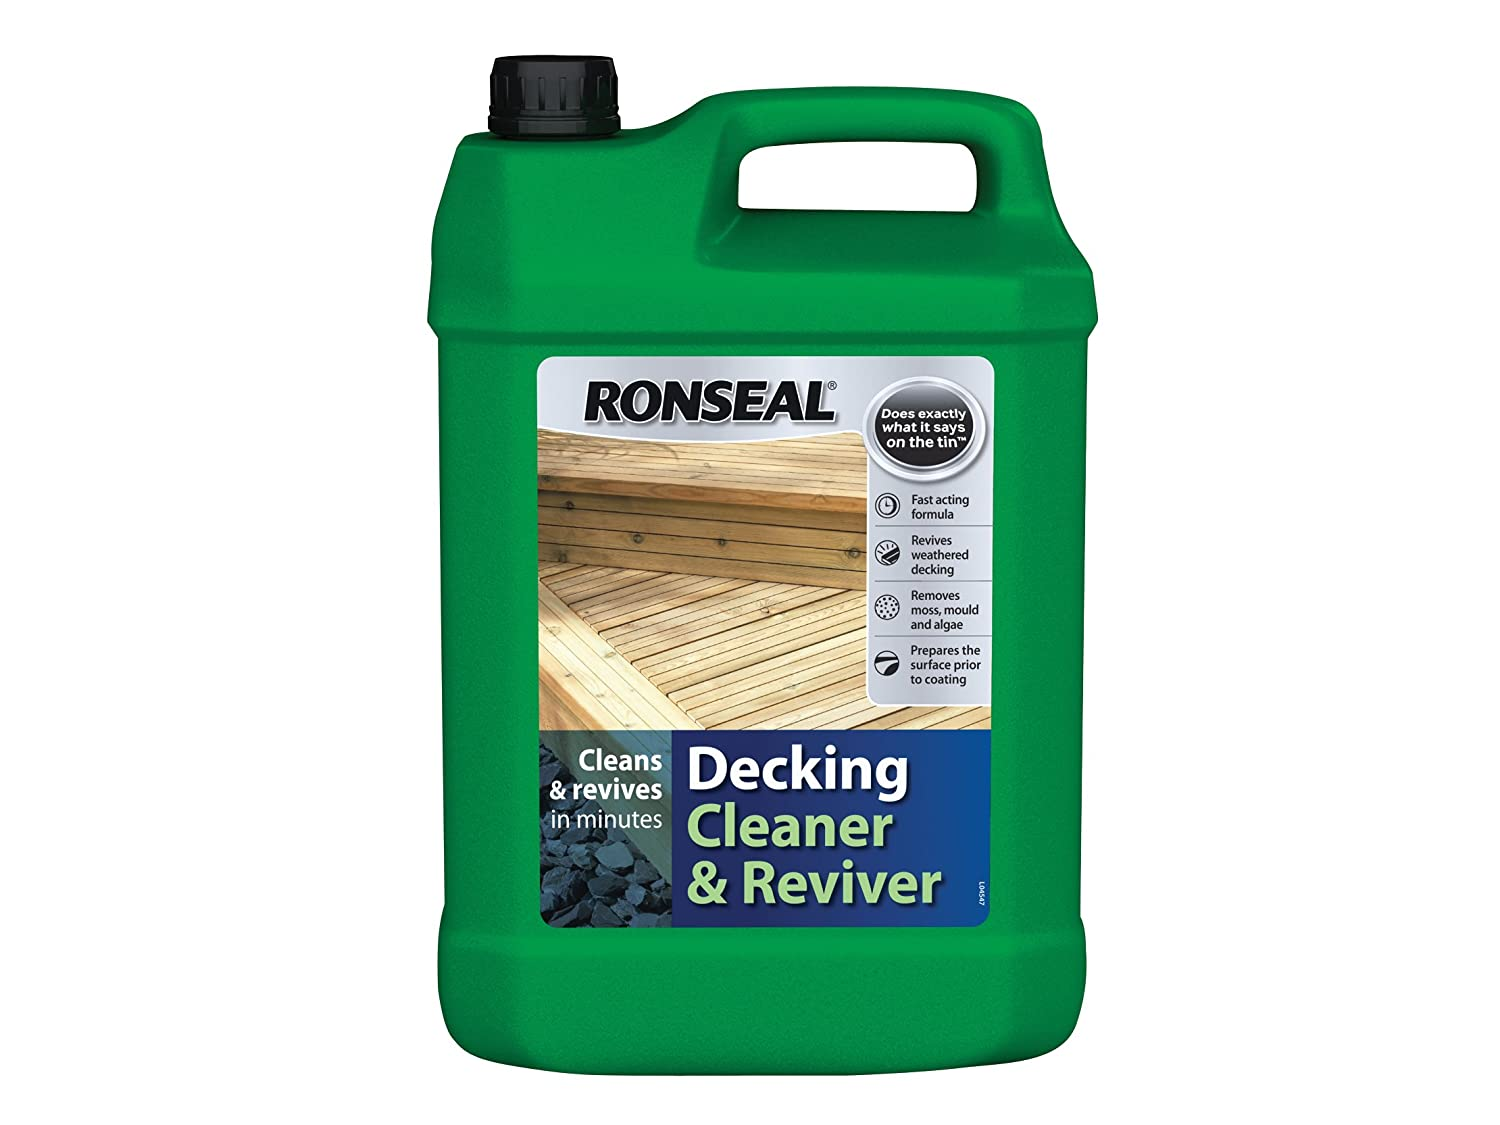 Ronseal dc decking cleaner 5 litre amazon diy tools baanklon Image collections